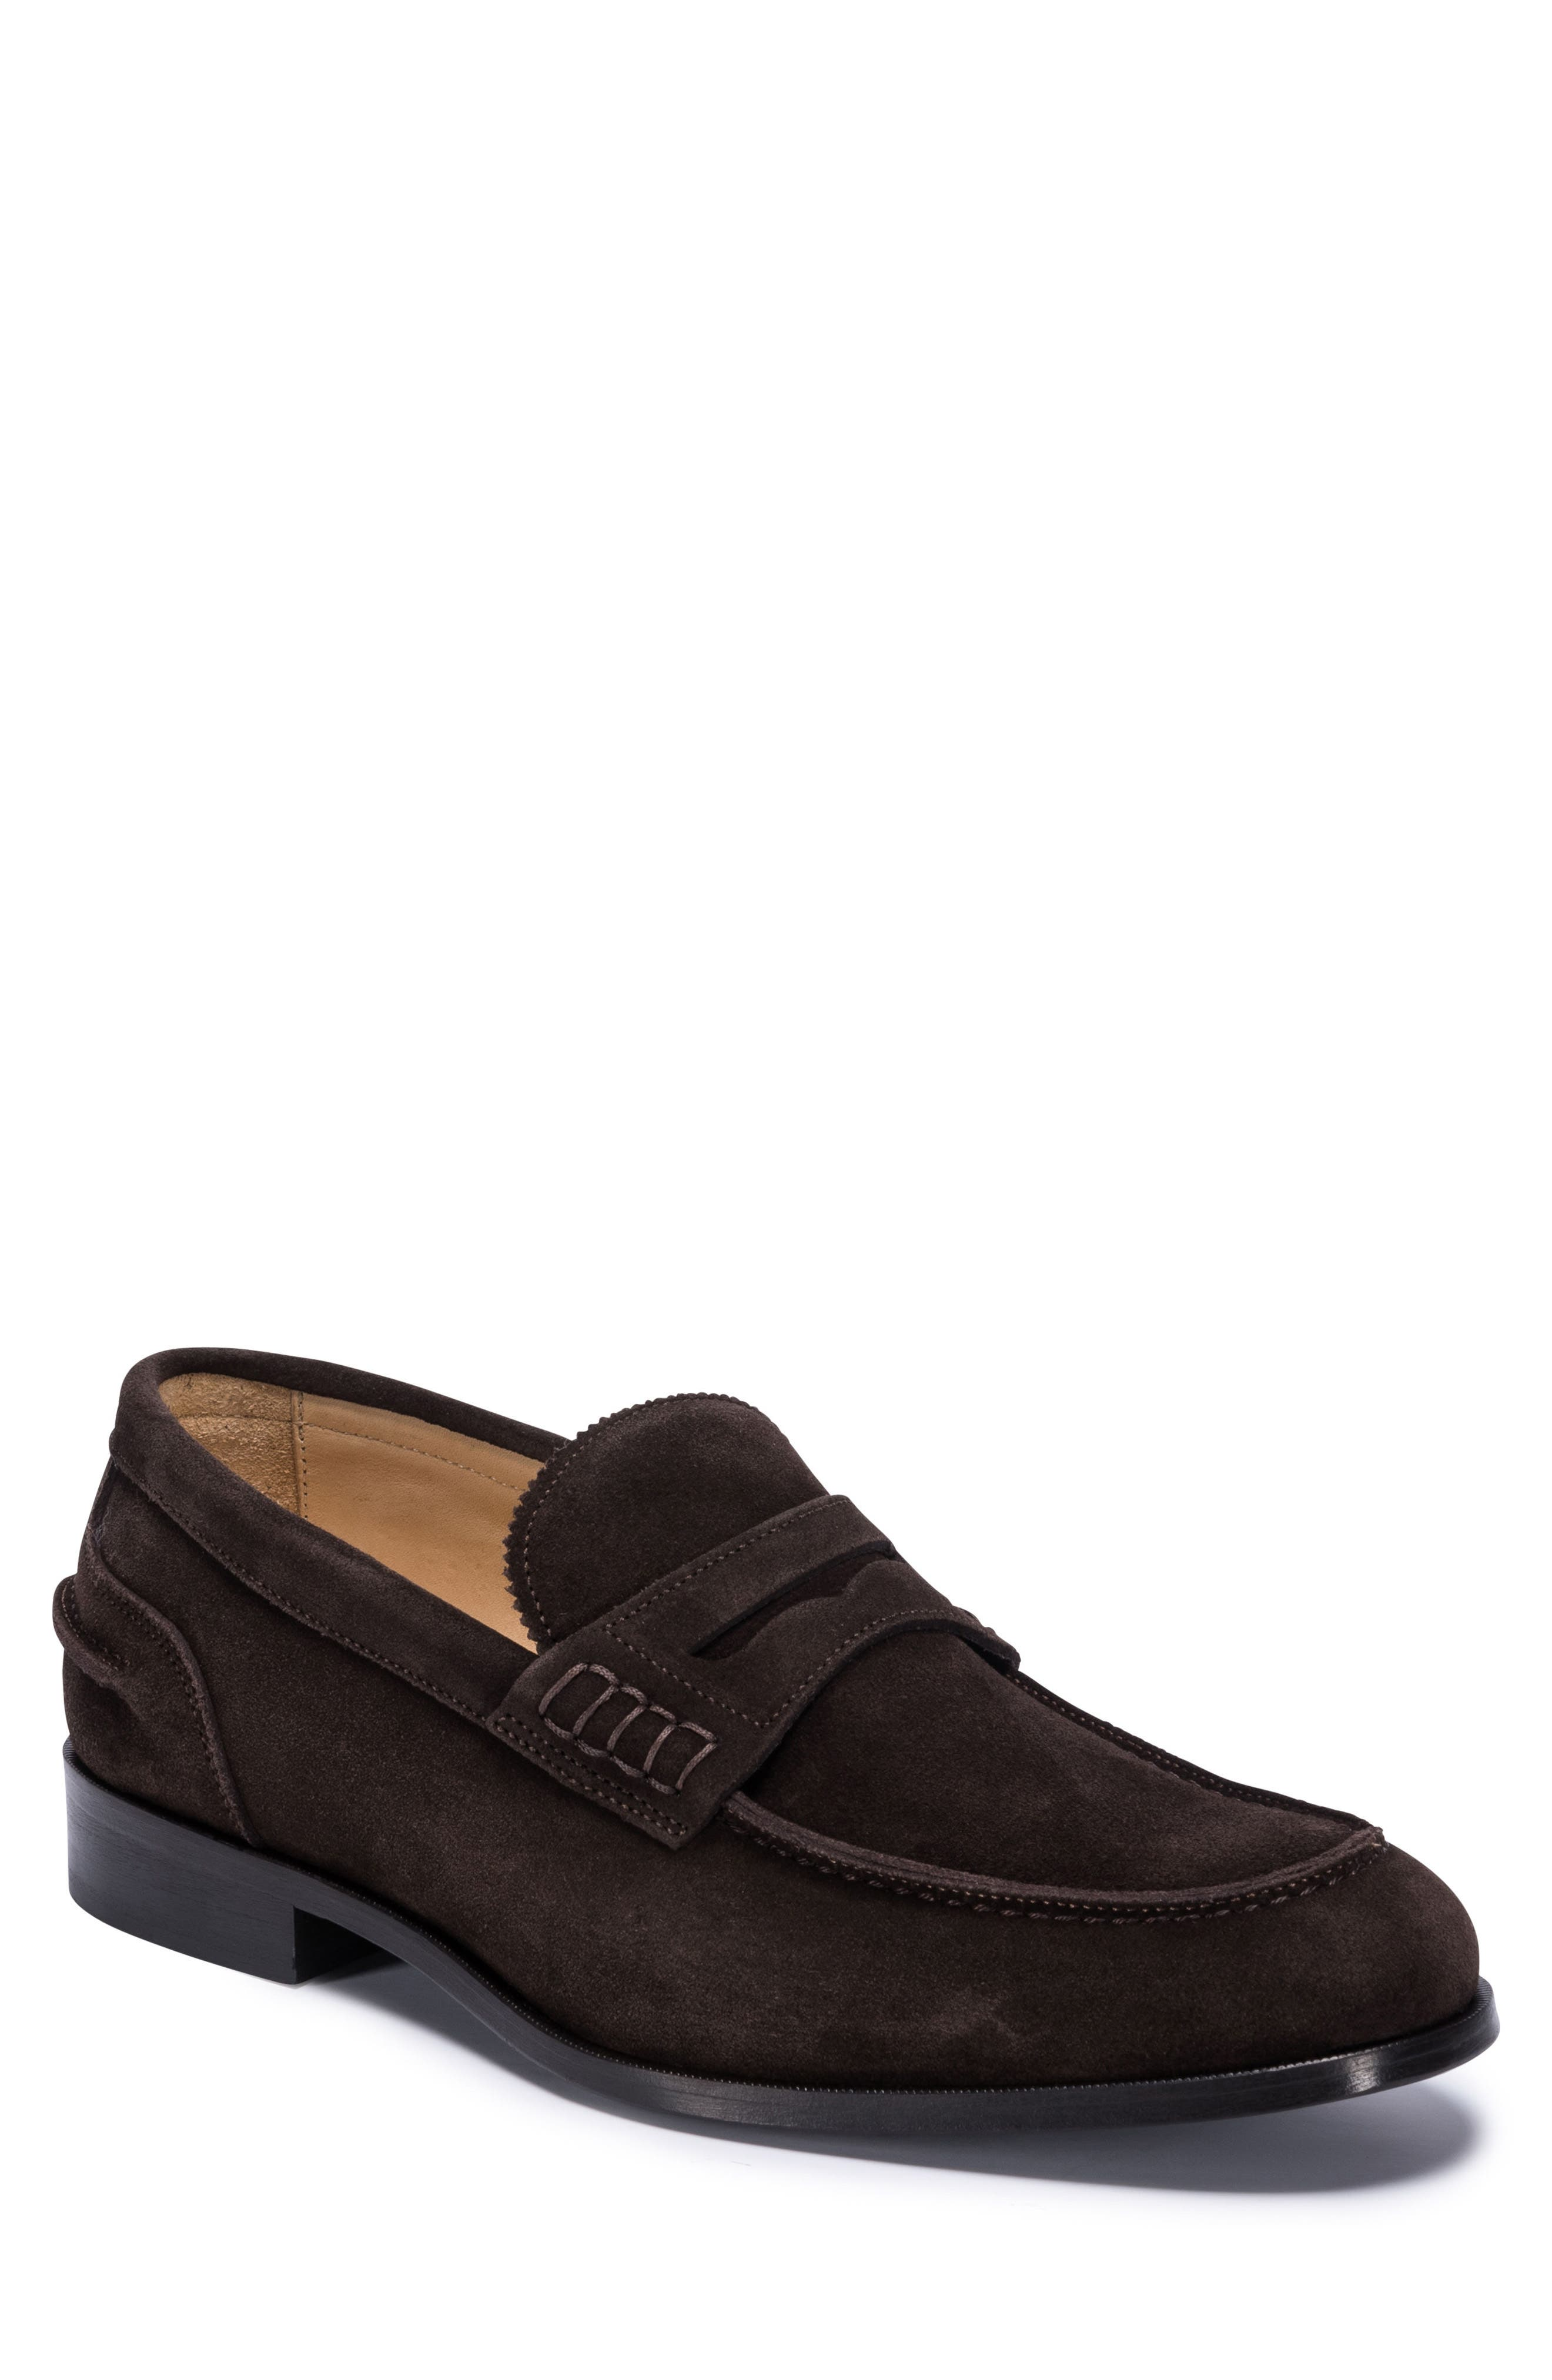 Torino Penny Loafer,                         Main,                         color, 203